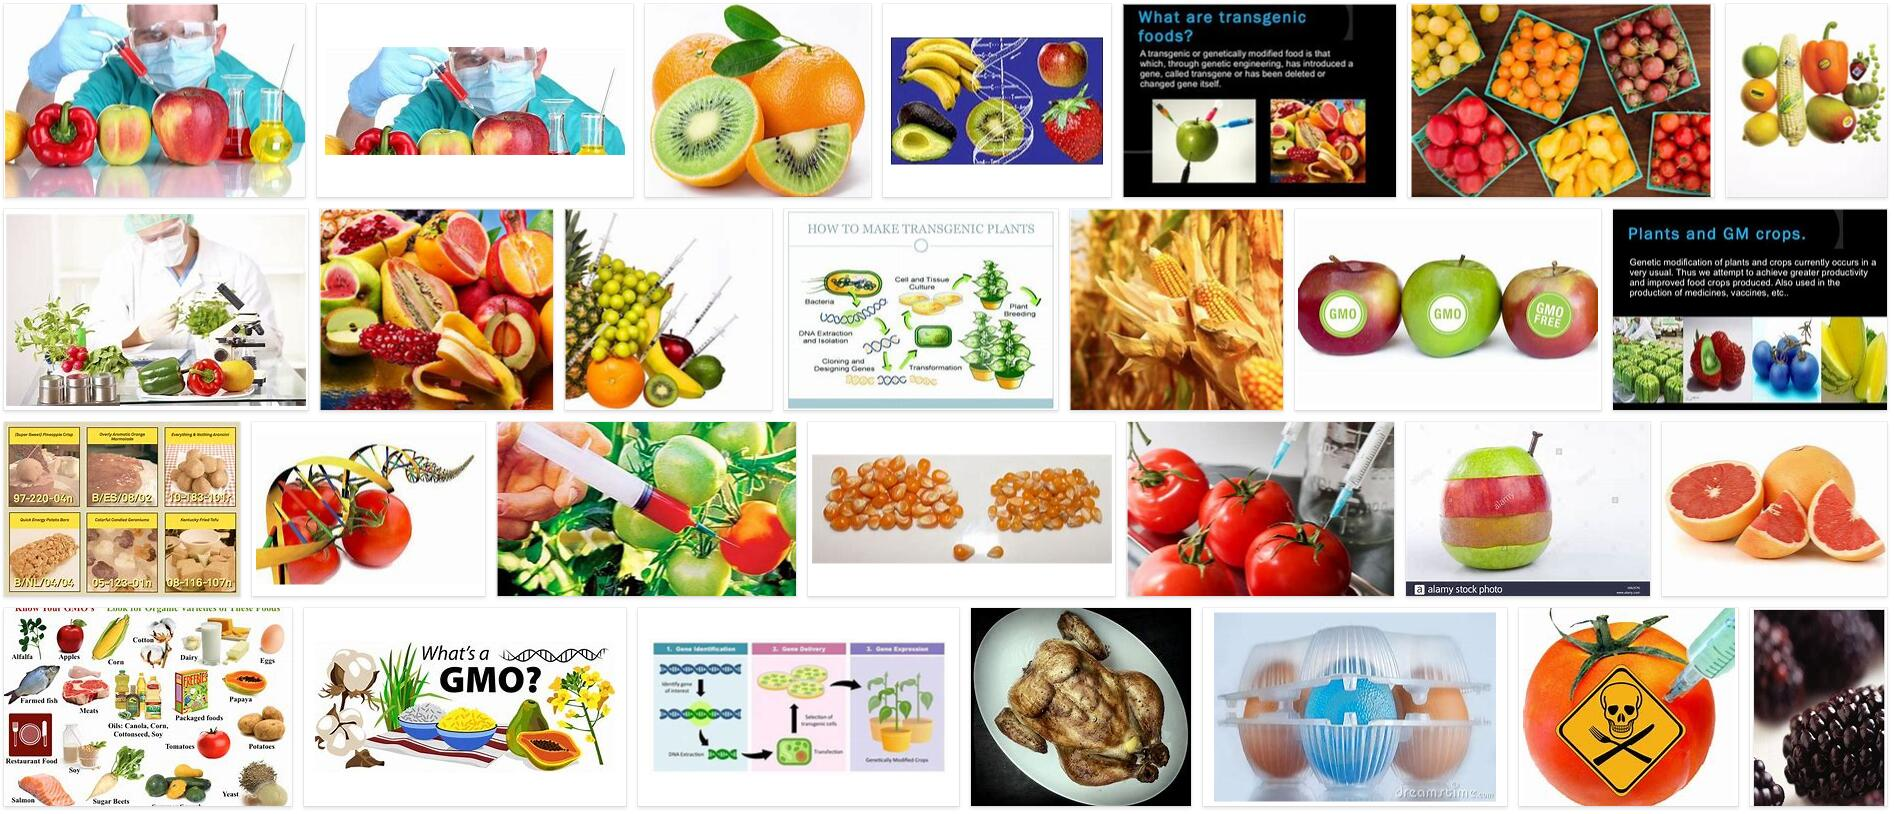 Meaning of Transgenic Foods in English